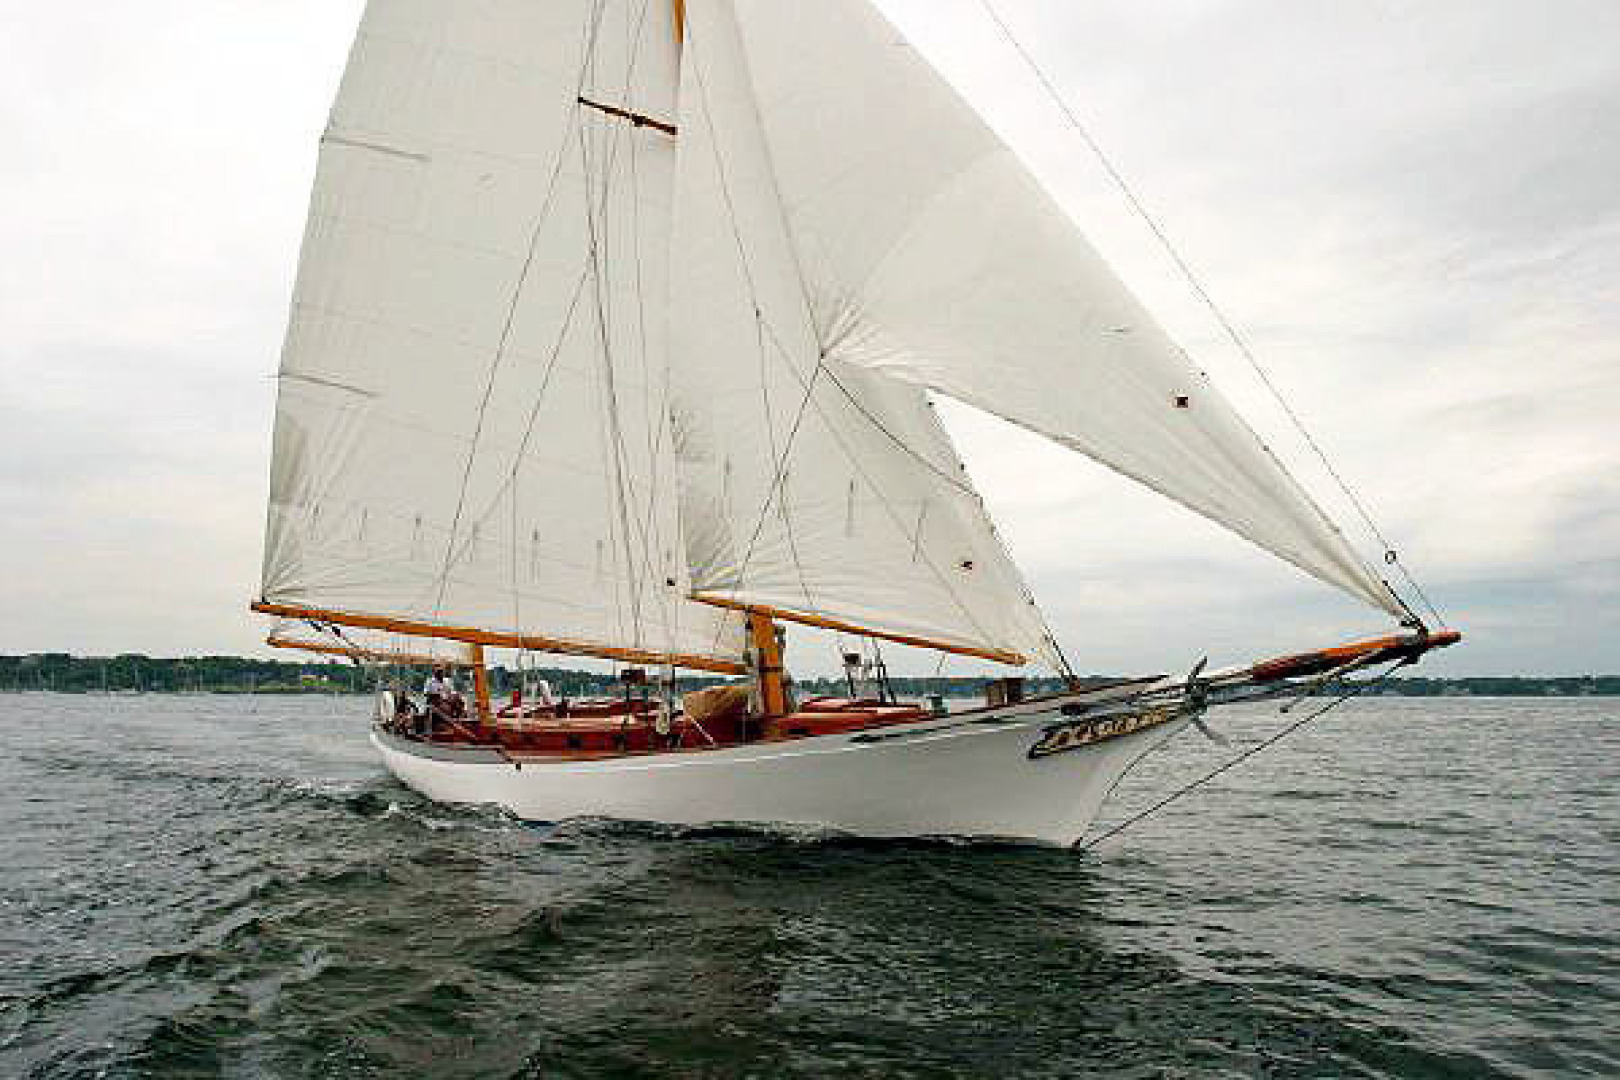 Herreshoff-Bounty 58 2004-CATRIONA Mattapoisett-Massachusetts-United States-Under Sail-1560600 | Thumbnail